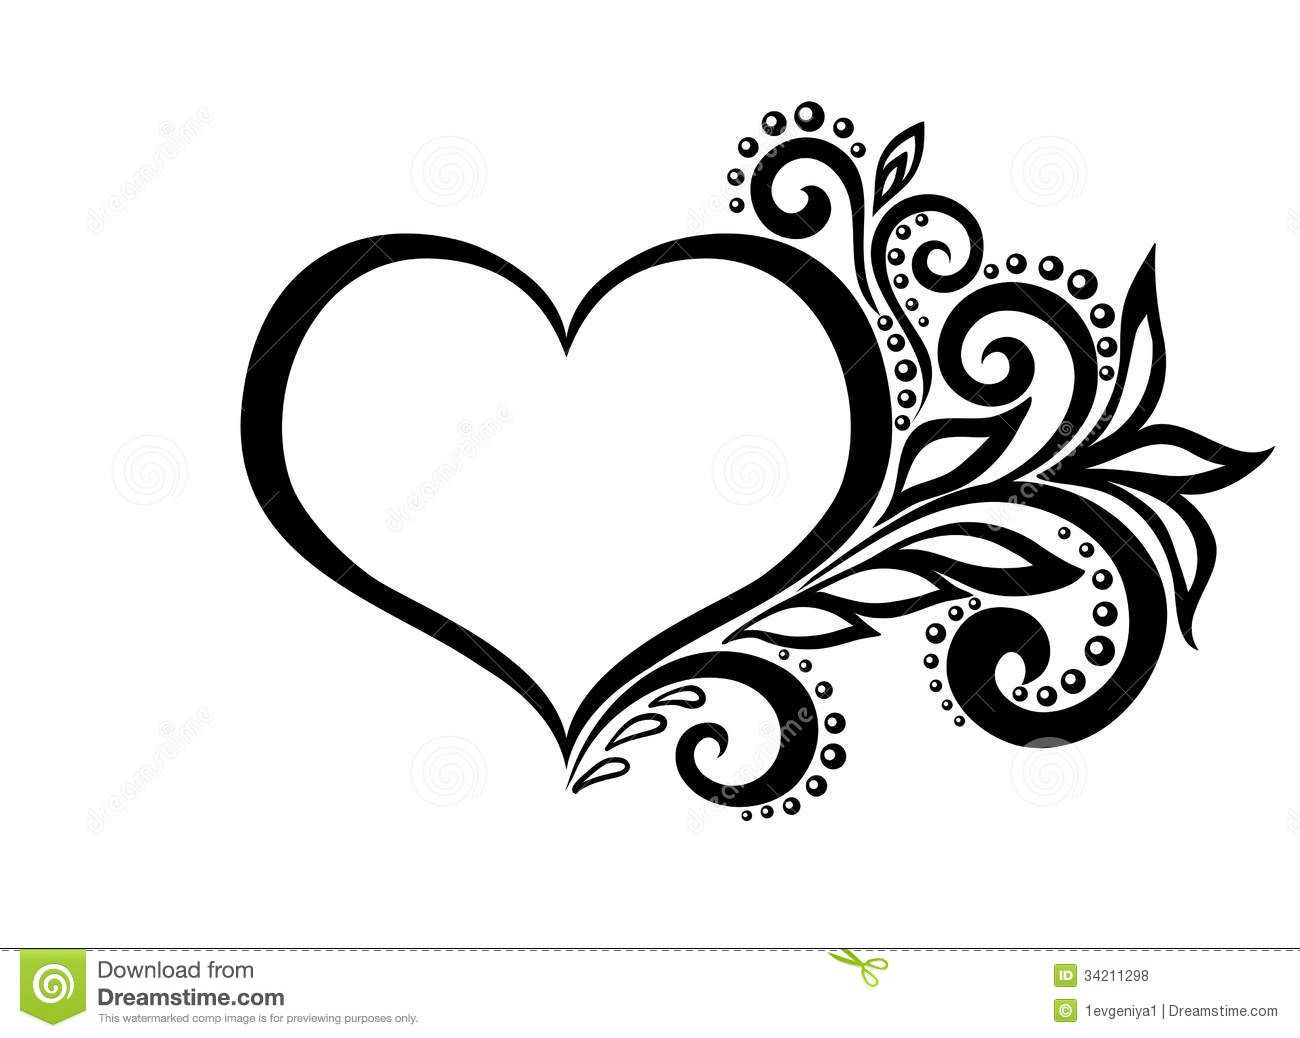 Heart silhouette google search projects to try